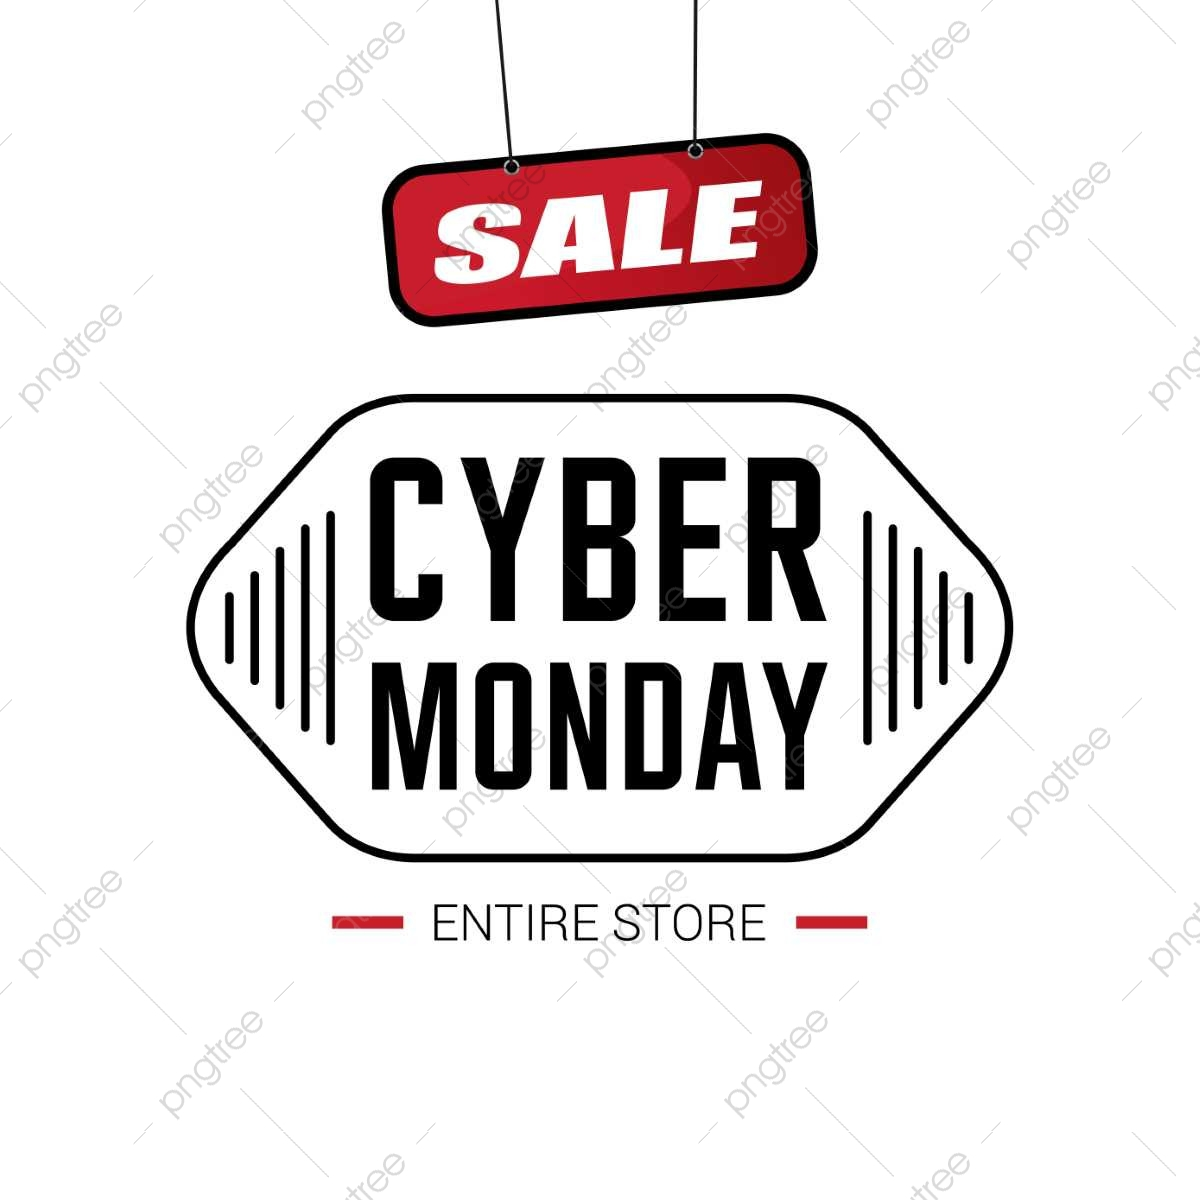 Cyber Monday Sale Card Vector, Cyber, Monday, Sale PNG and Vector.